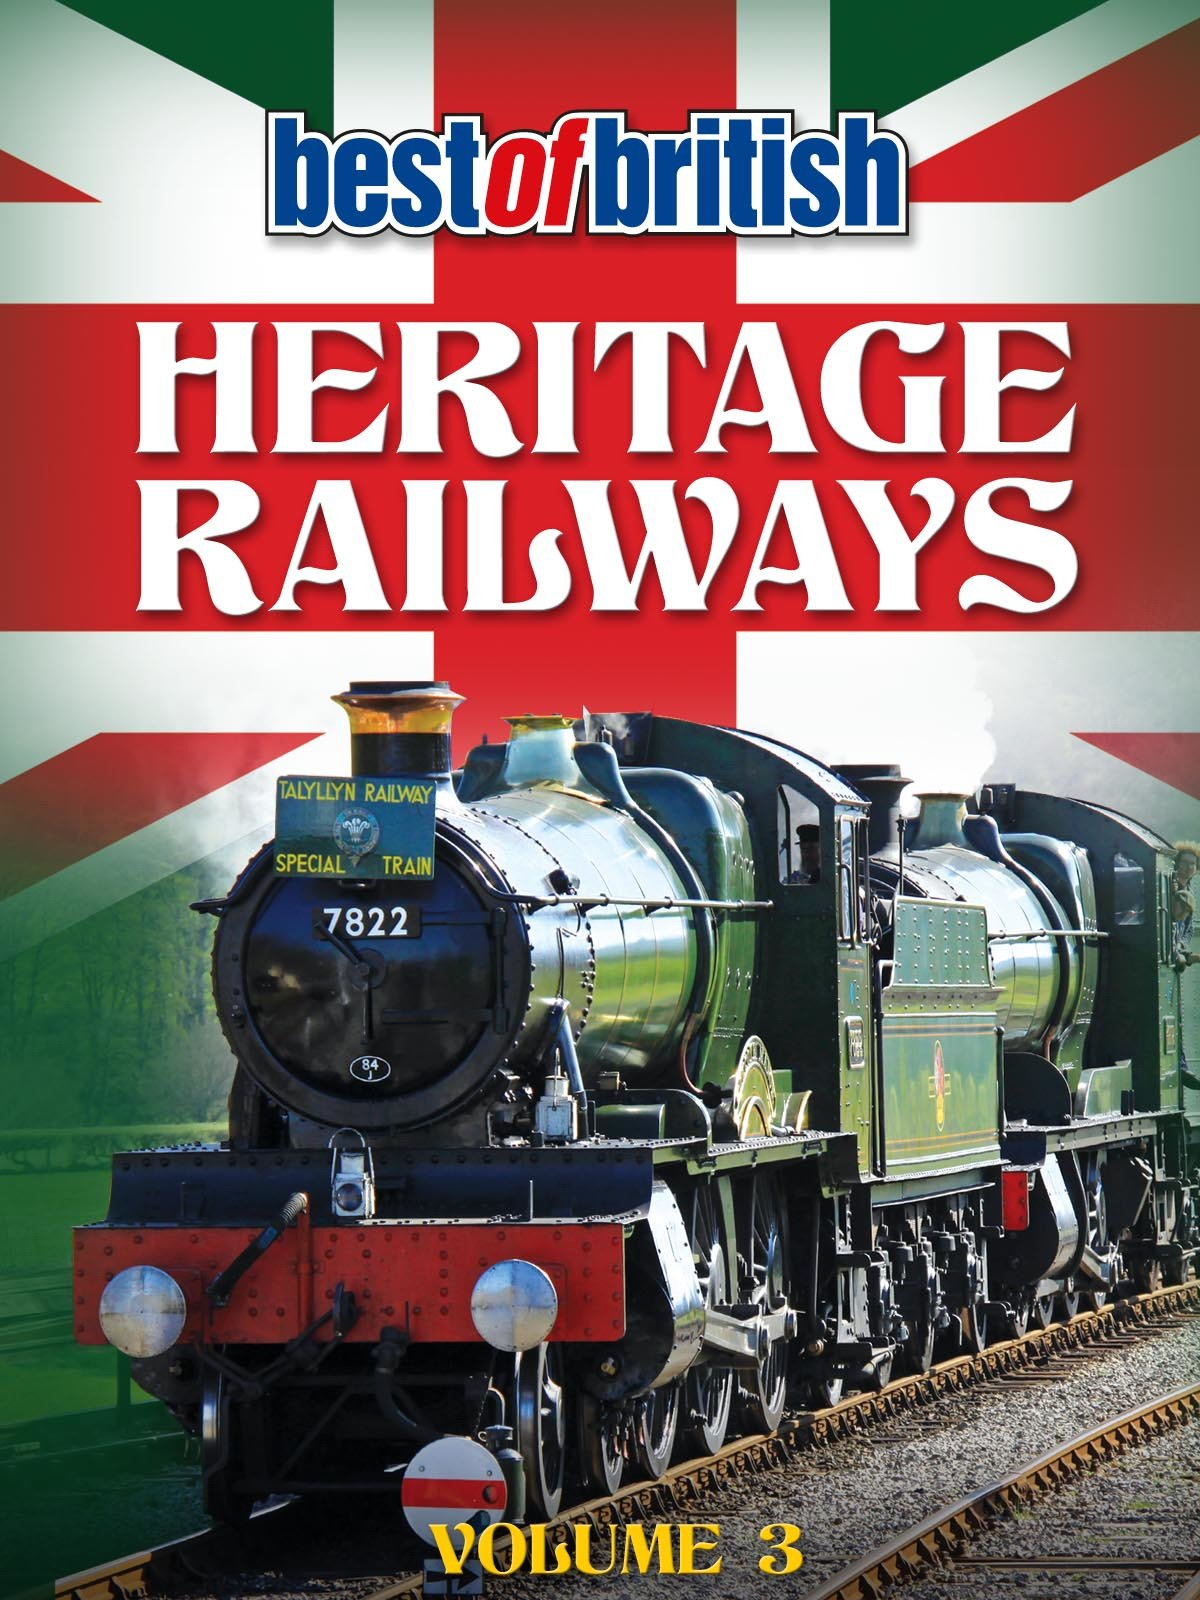 Best of British Heritage Railways Volume 3